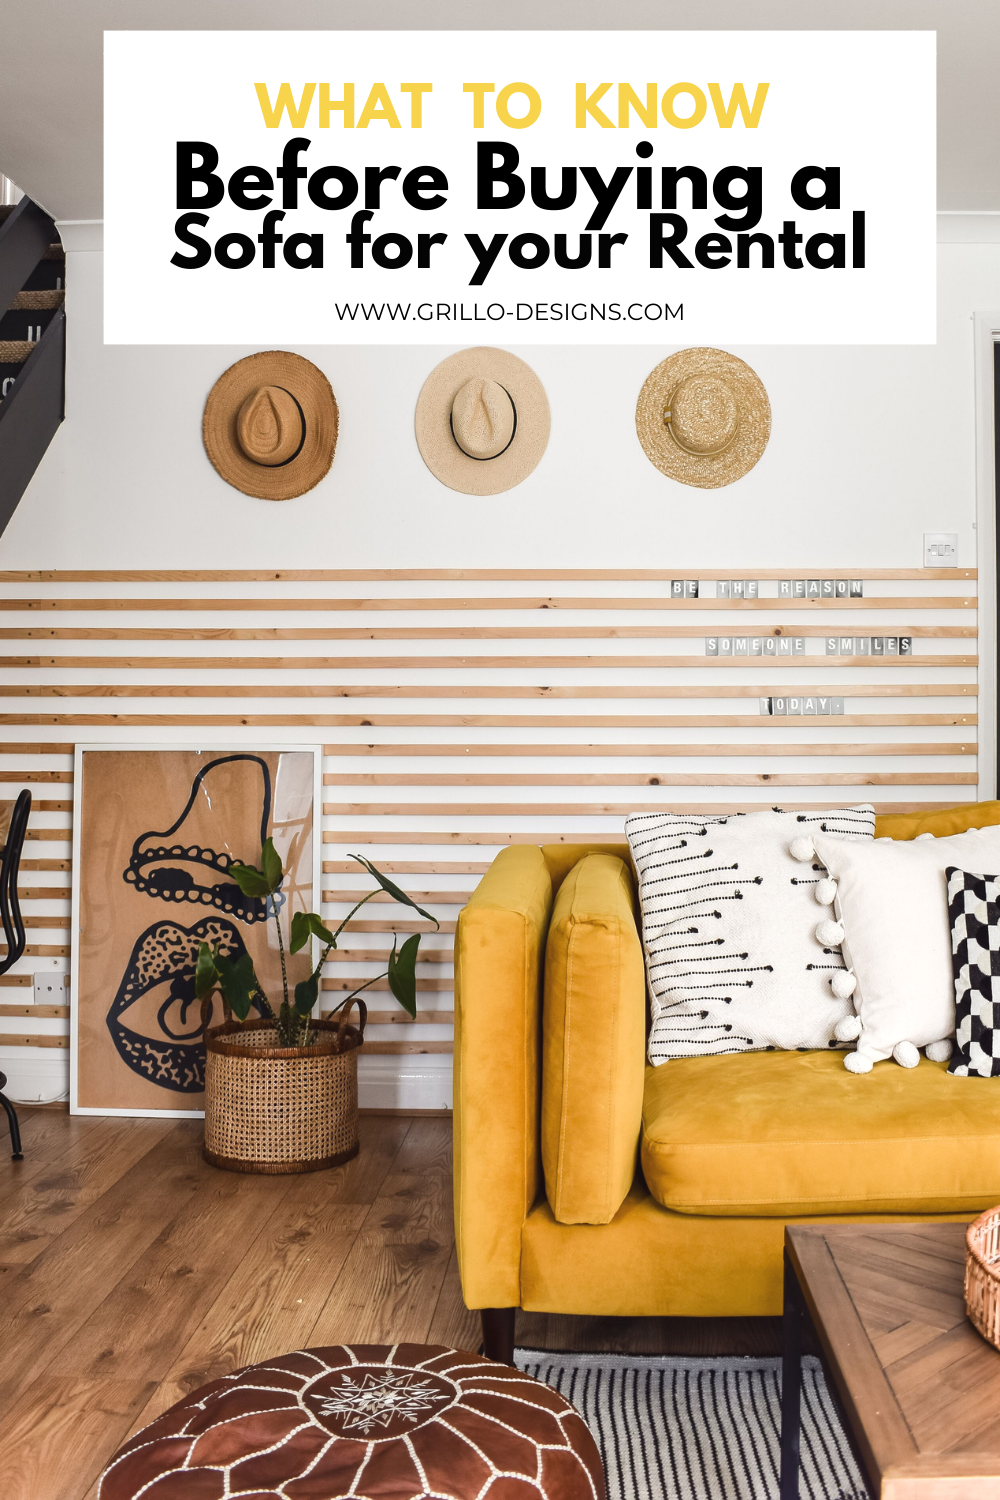 What to know before buying a sofa for your rental